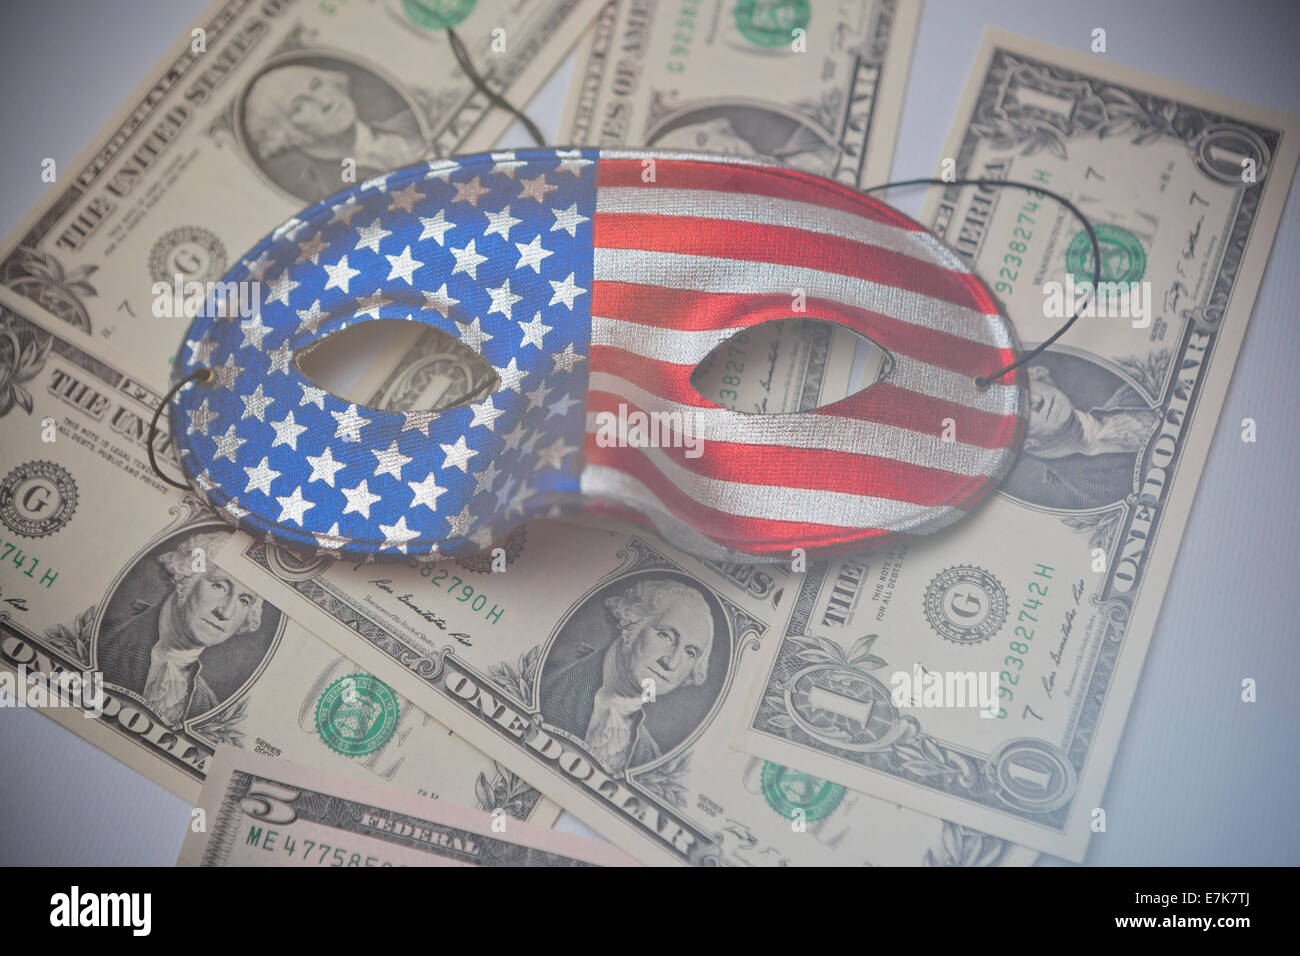 Global currency super power struggle foreign exchange stock trading market USA China globalisation brexit fraud - Stock Image